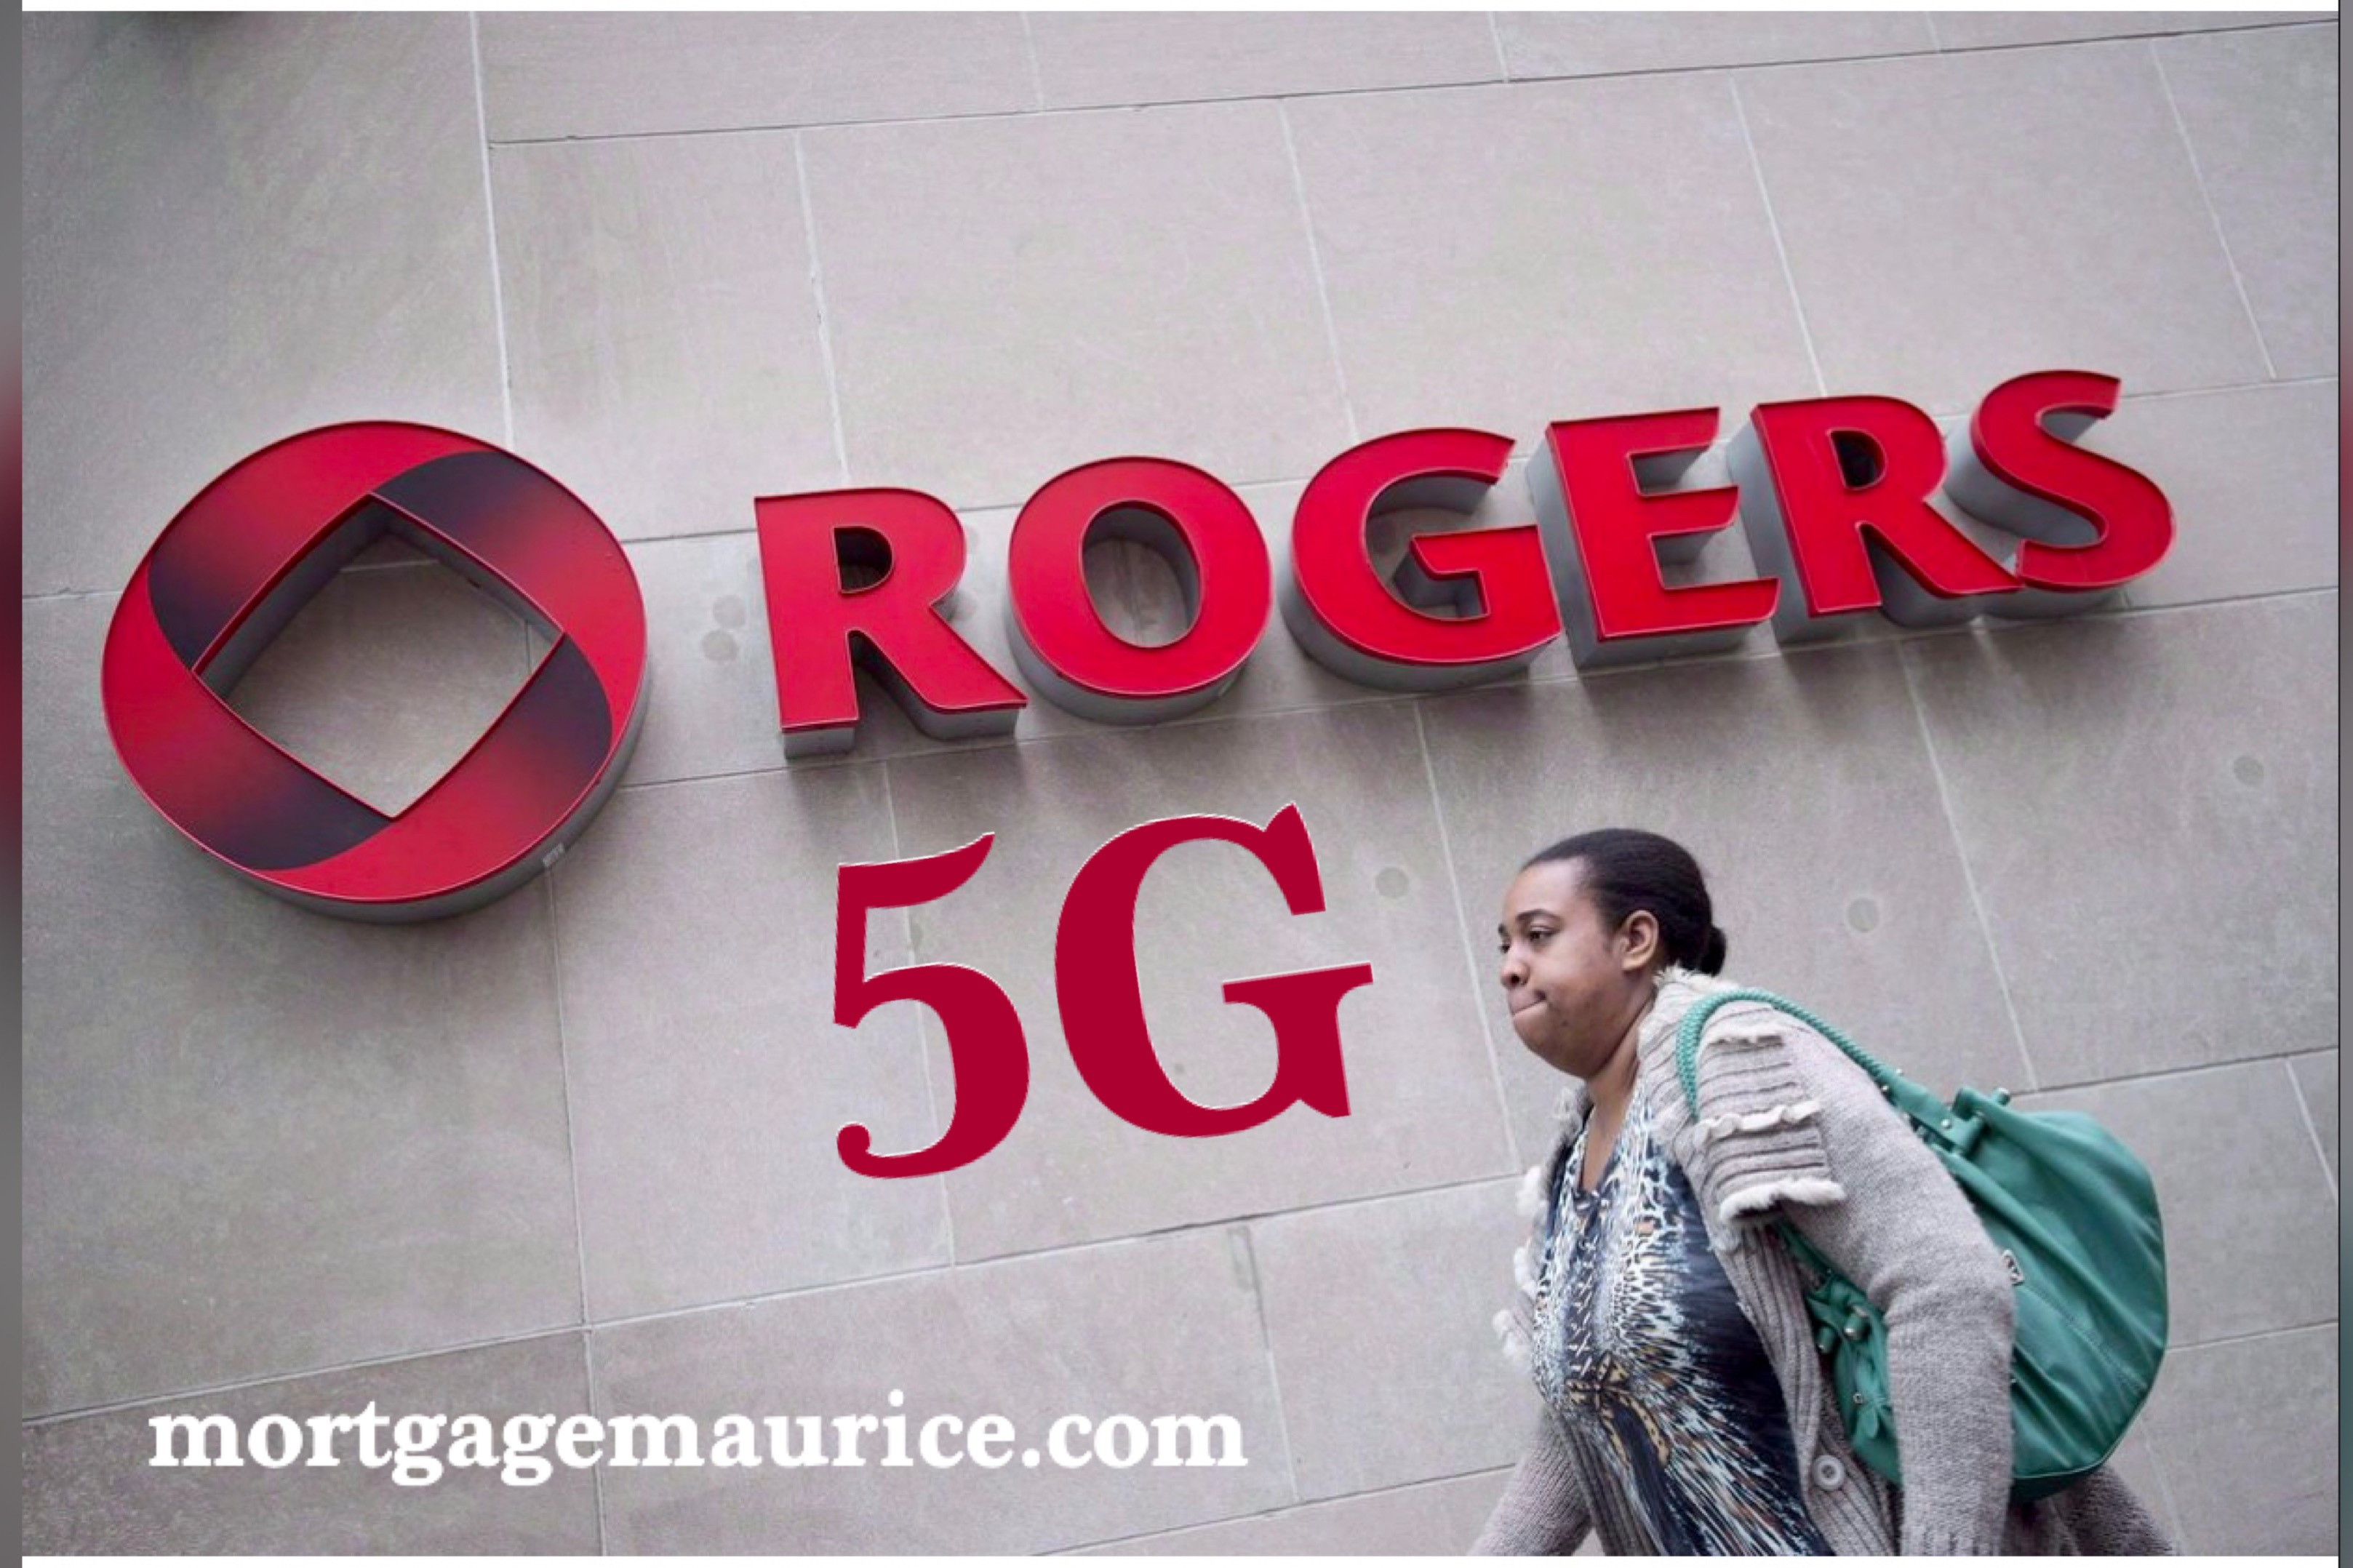 Rogers rolls out 5G wireless networks in major Canadian cities